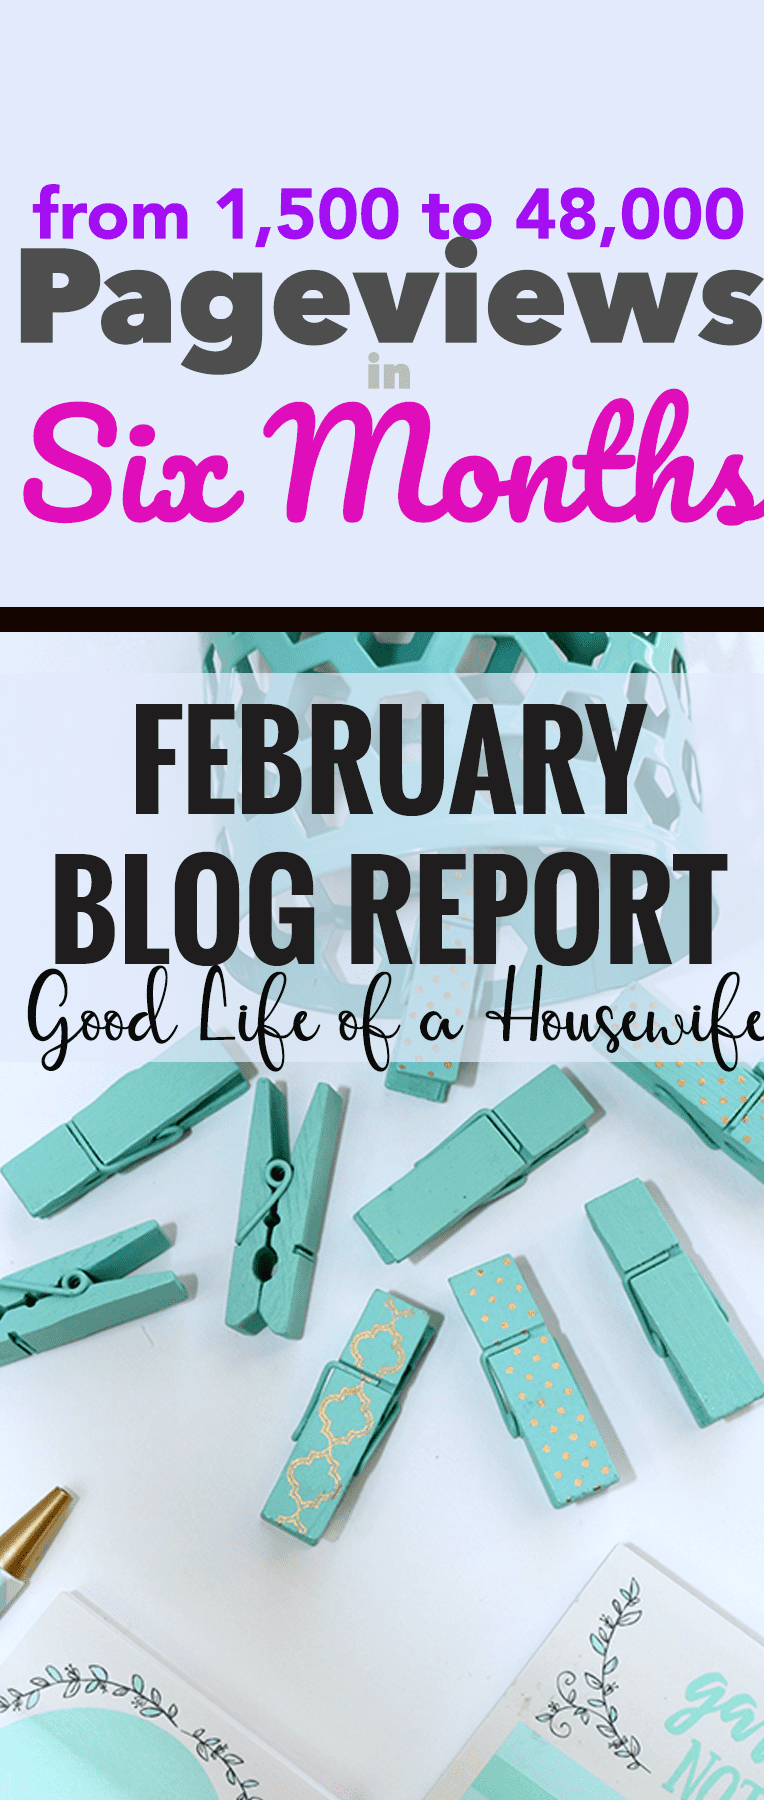 February blogging report. How I increased my traffic from 1500 to 48,000 in six months